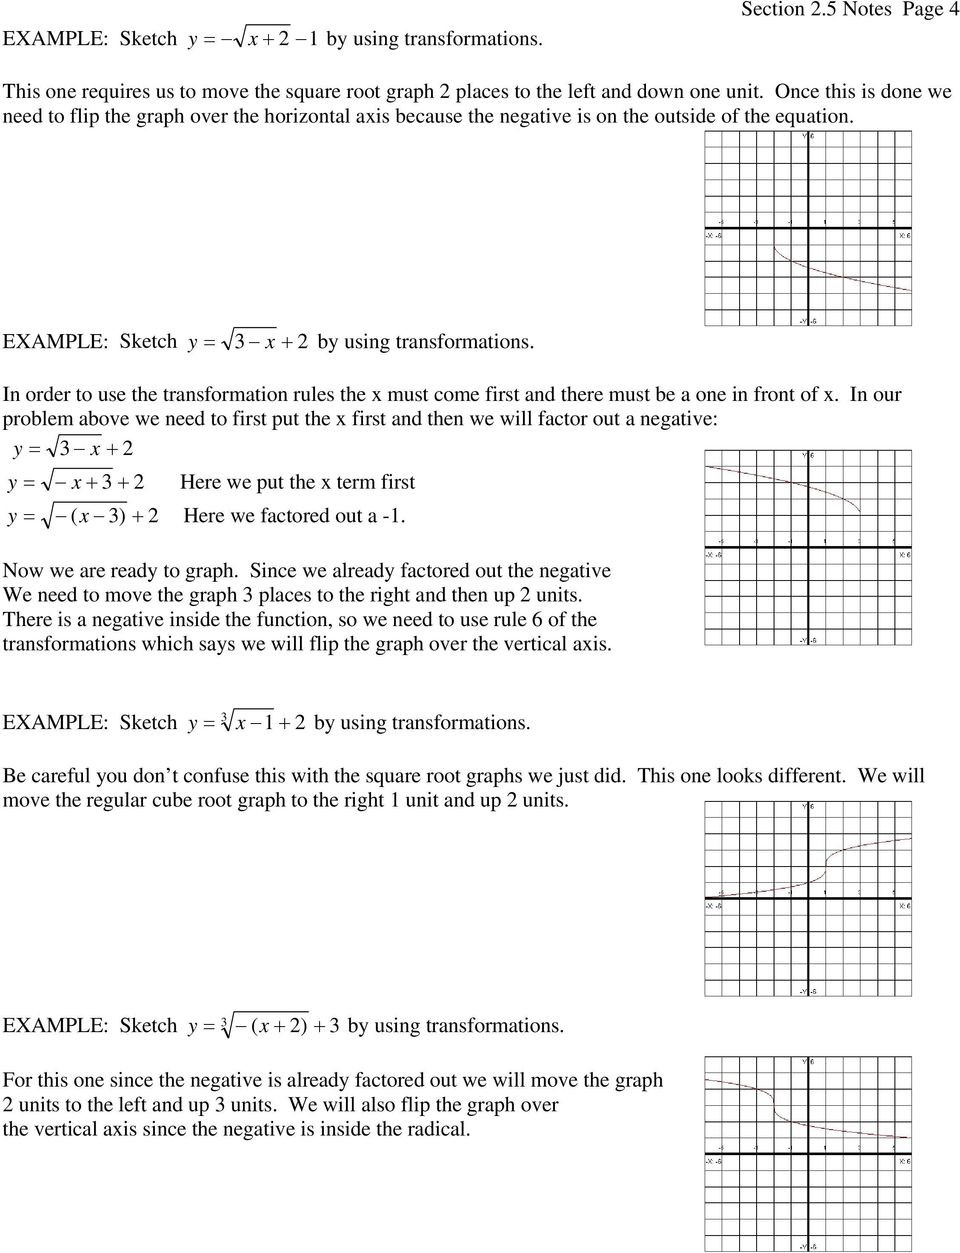 Transformations Of Functions Worksheet 2 5 Transformations Of Functions Pdf Free Download